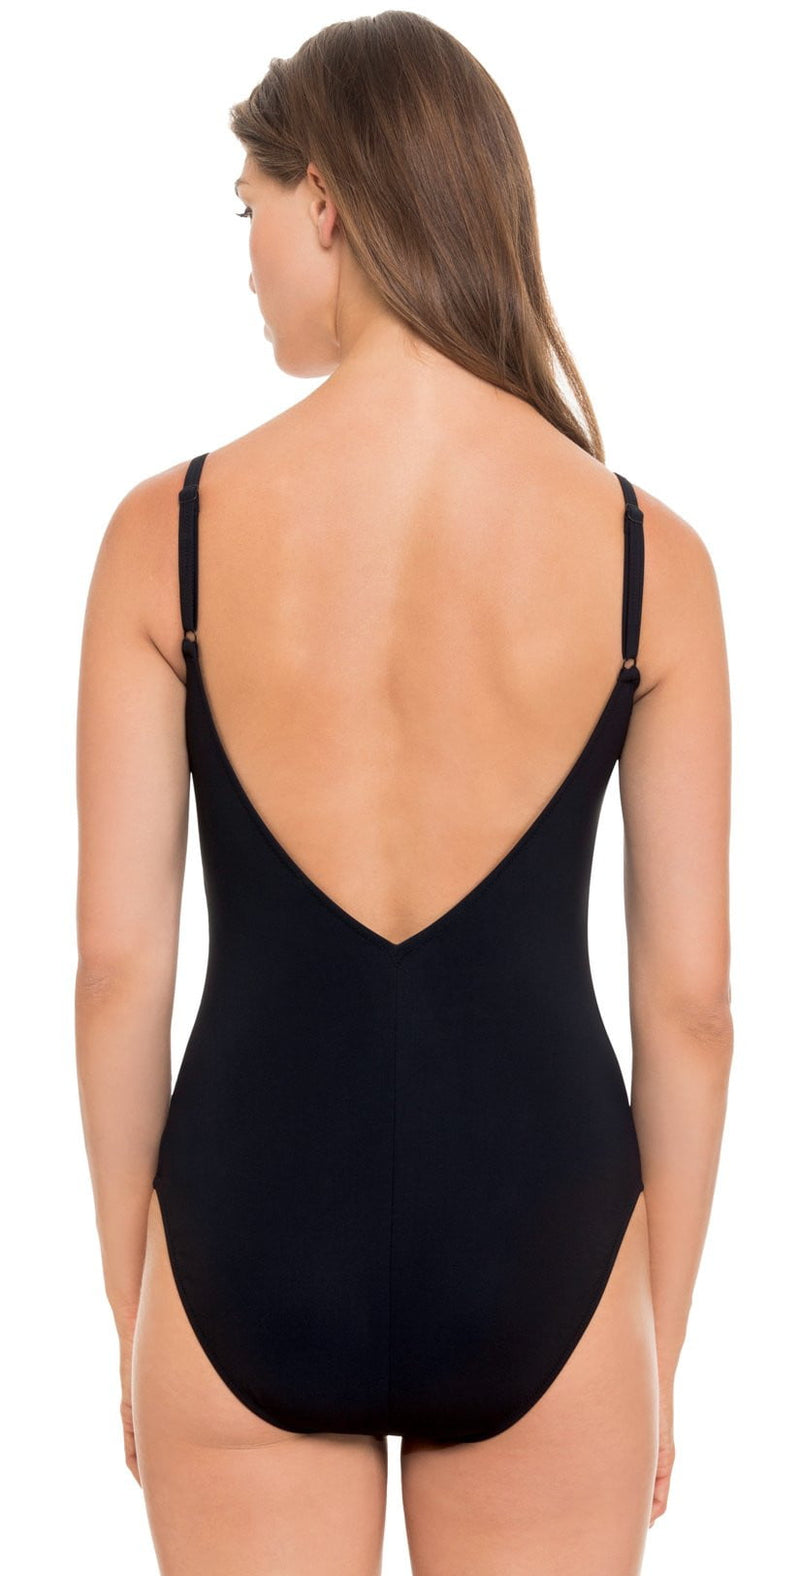 Profile by Gottex Hollywood One-Piece Swimsuit in Black E854-2074-001: